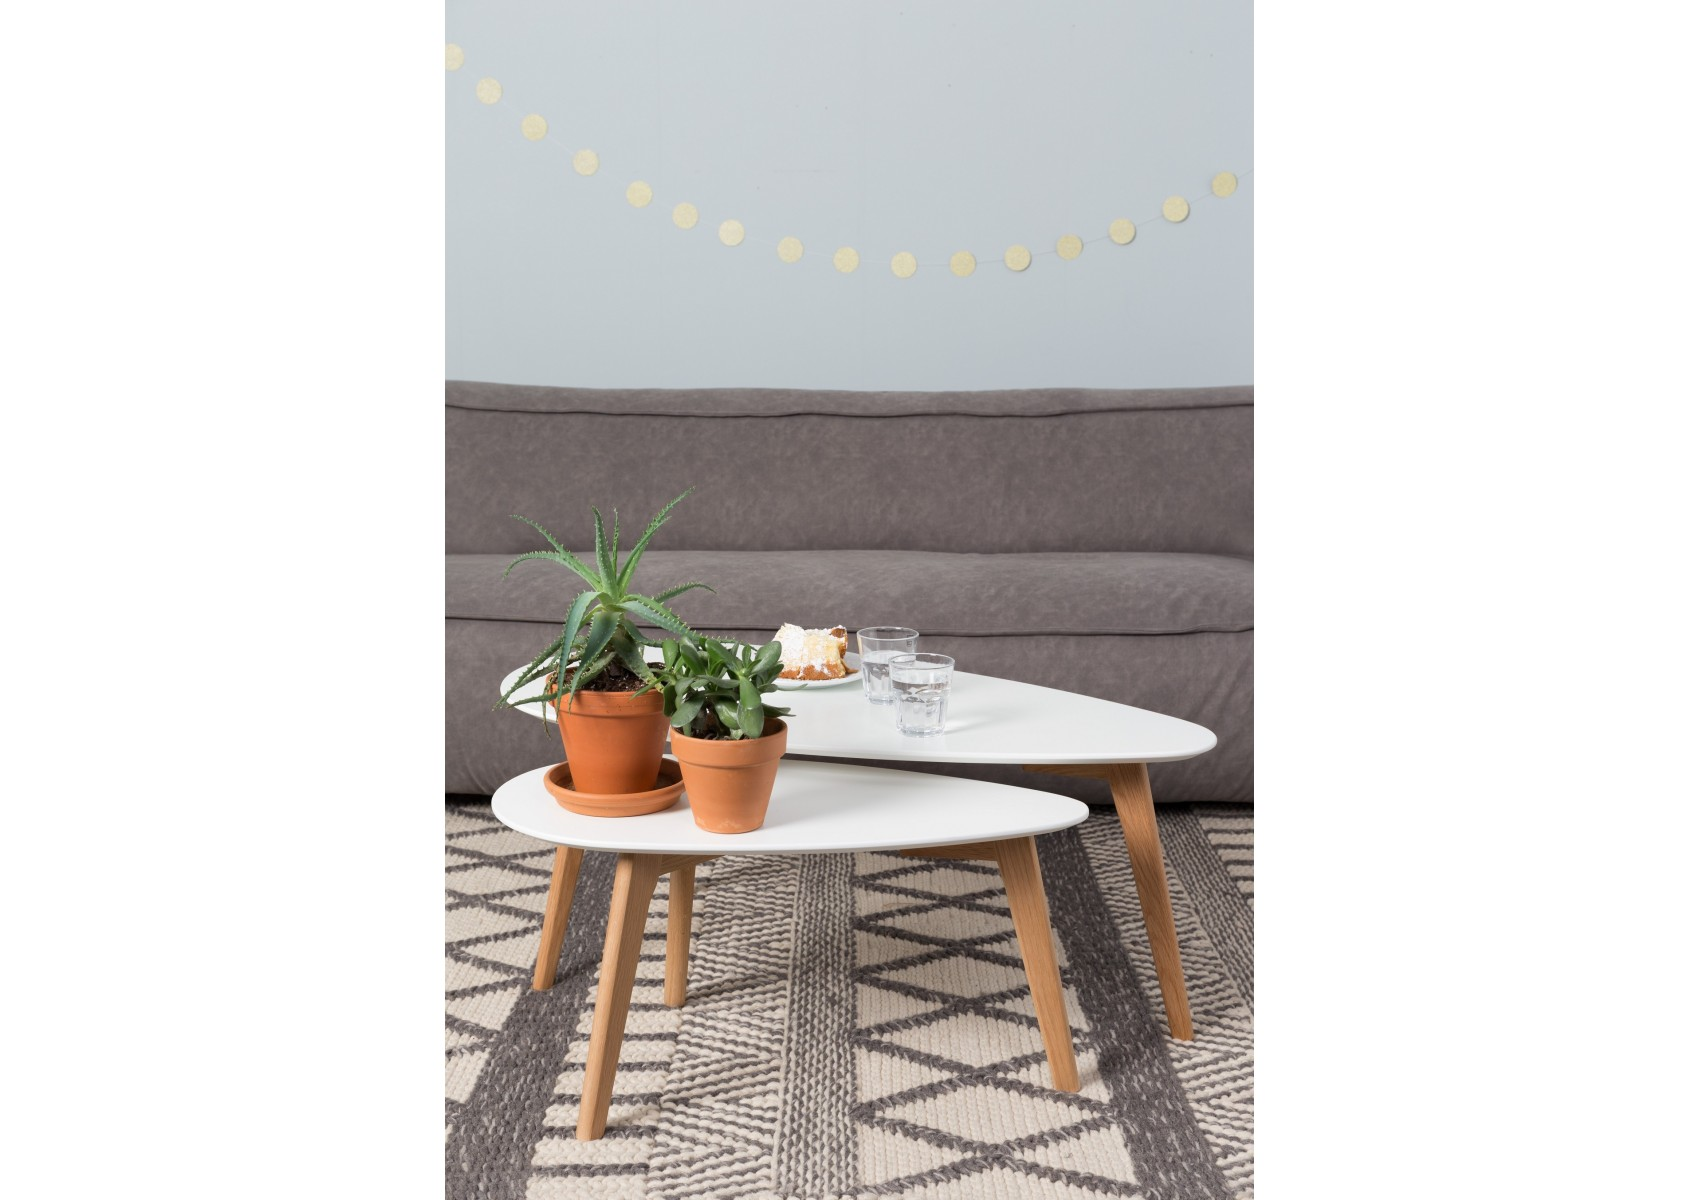 Tables basse drop scandinave laqu e blanche Table basse scandinave laquee